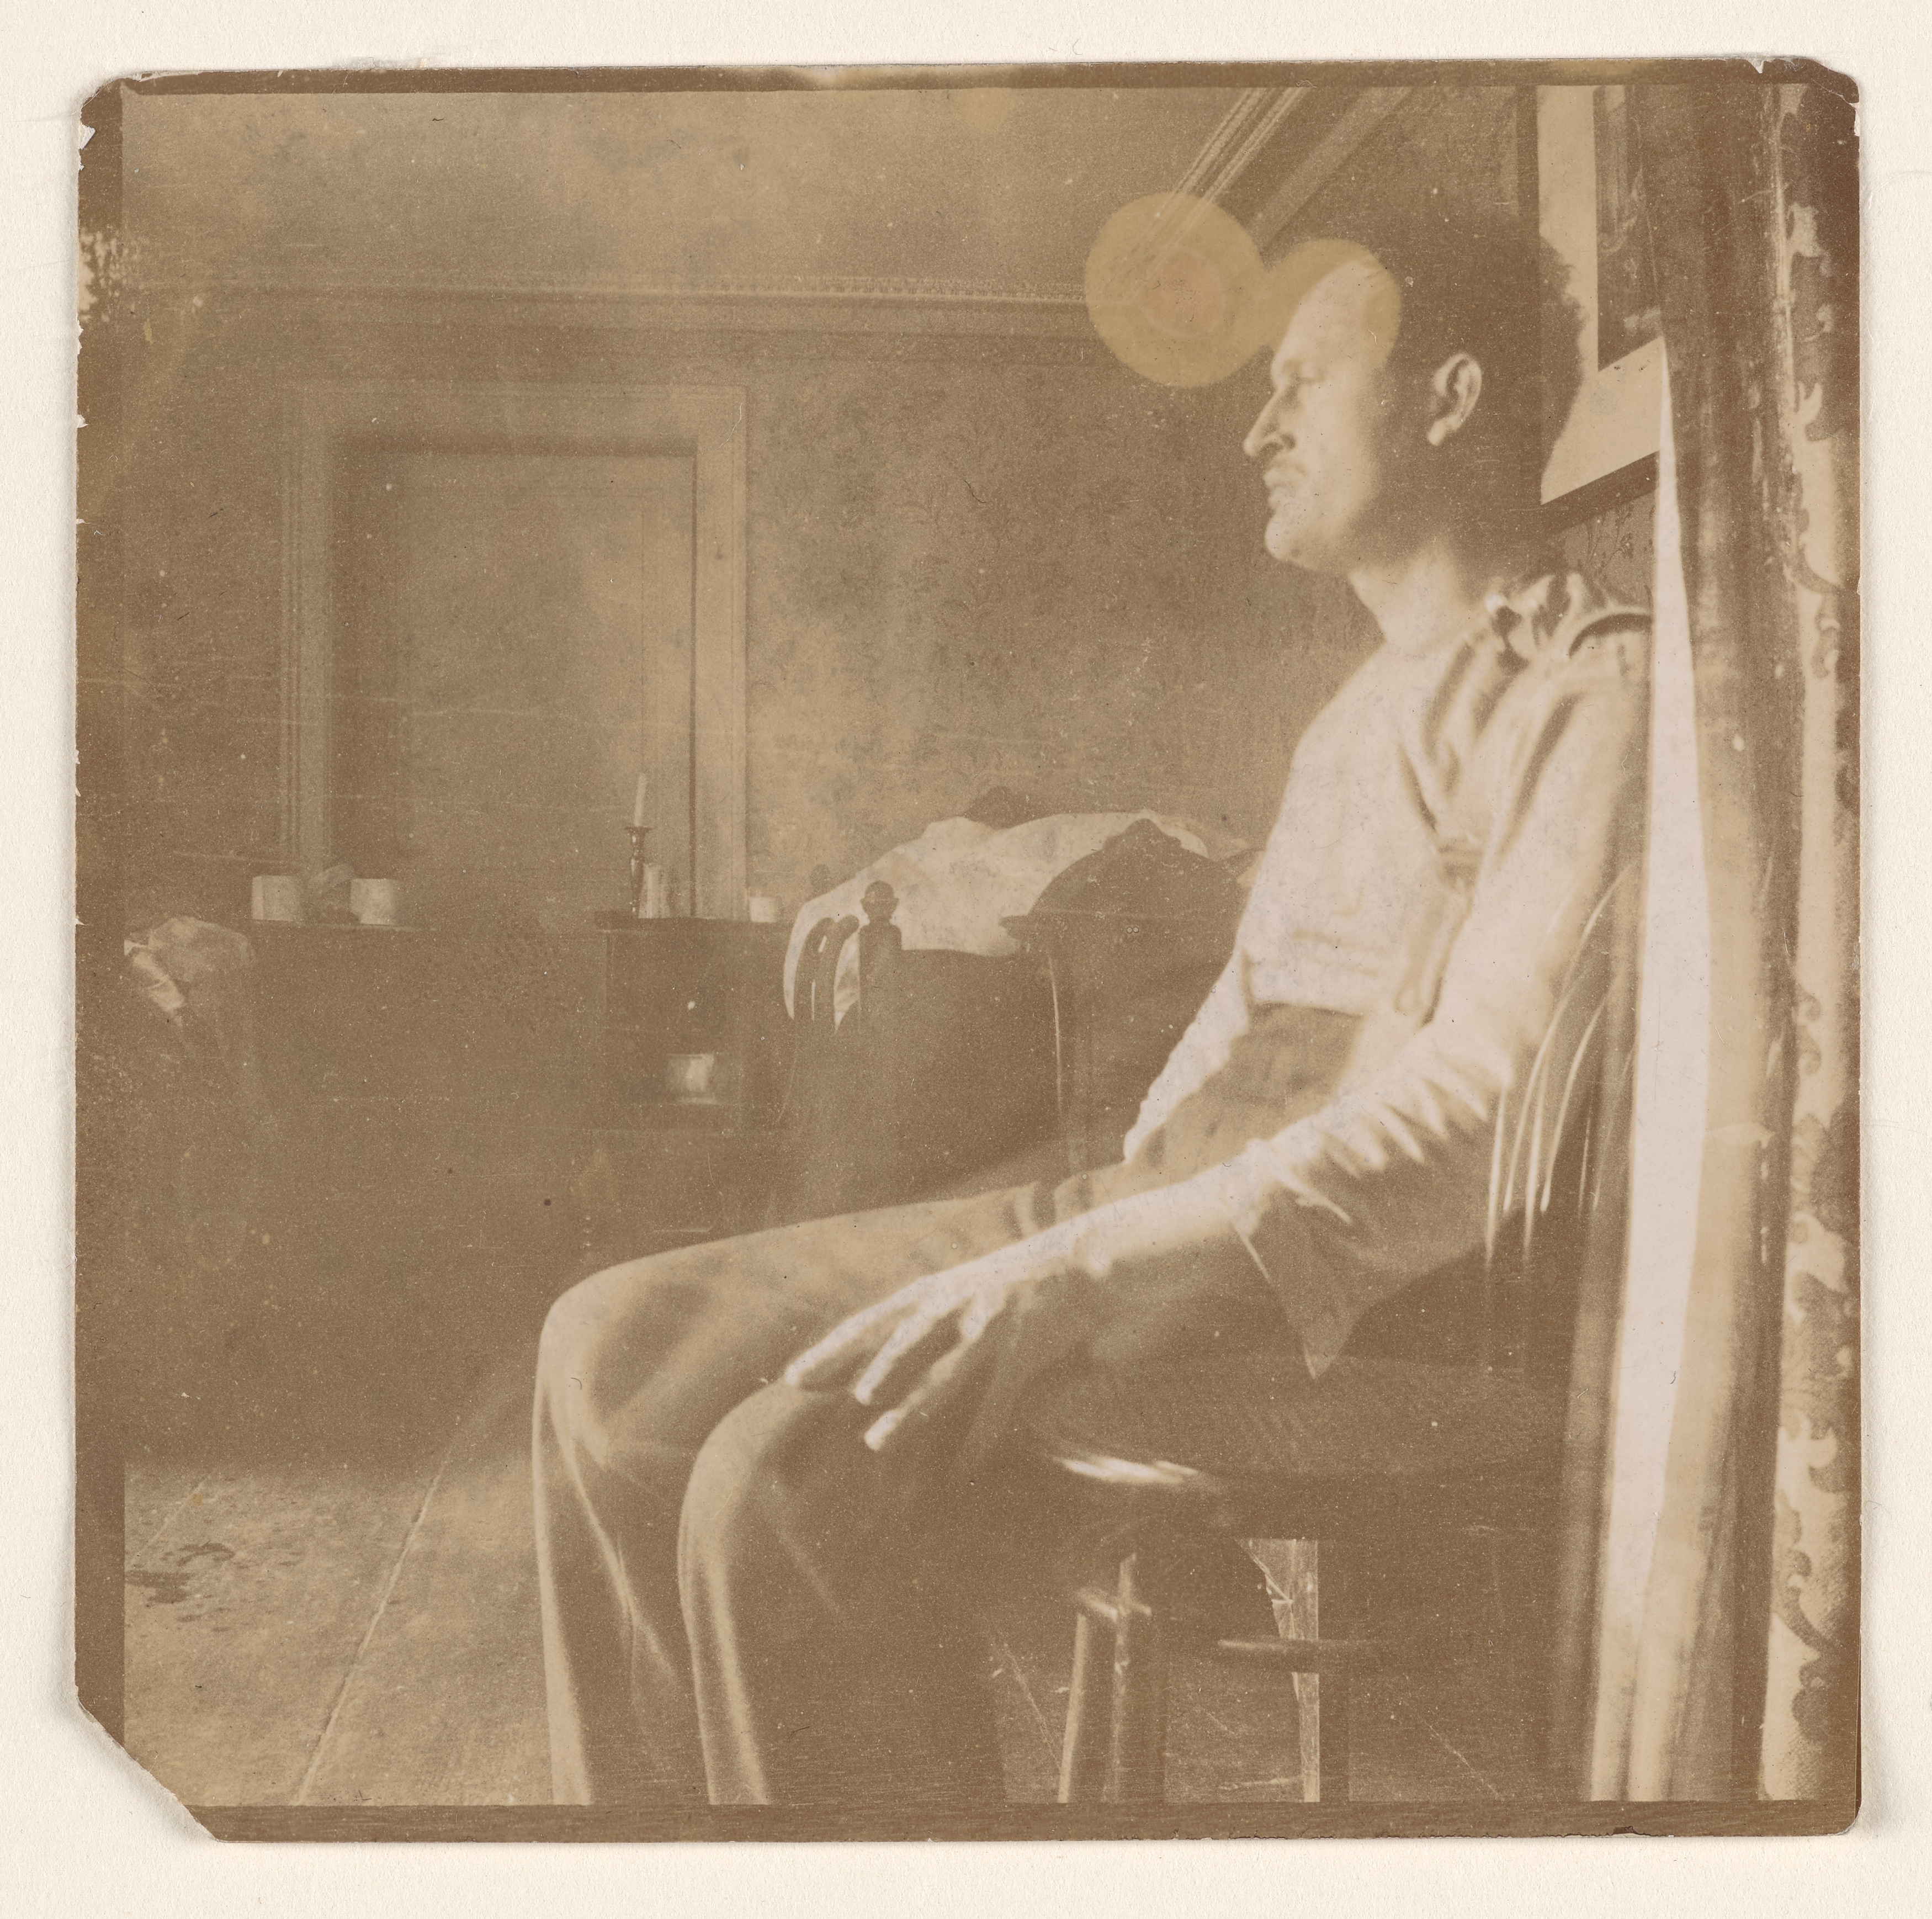 Edvard Munch in a Room I. Photograph, 1906. Photo © Munchmuseet